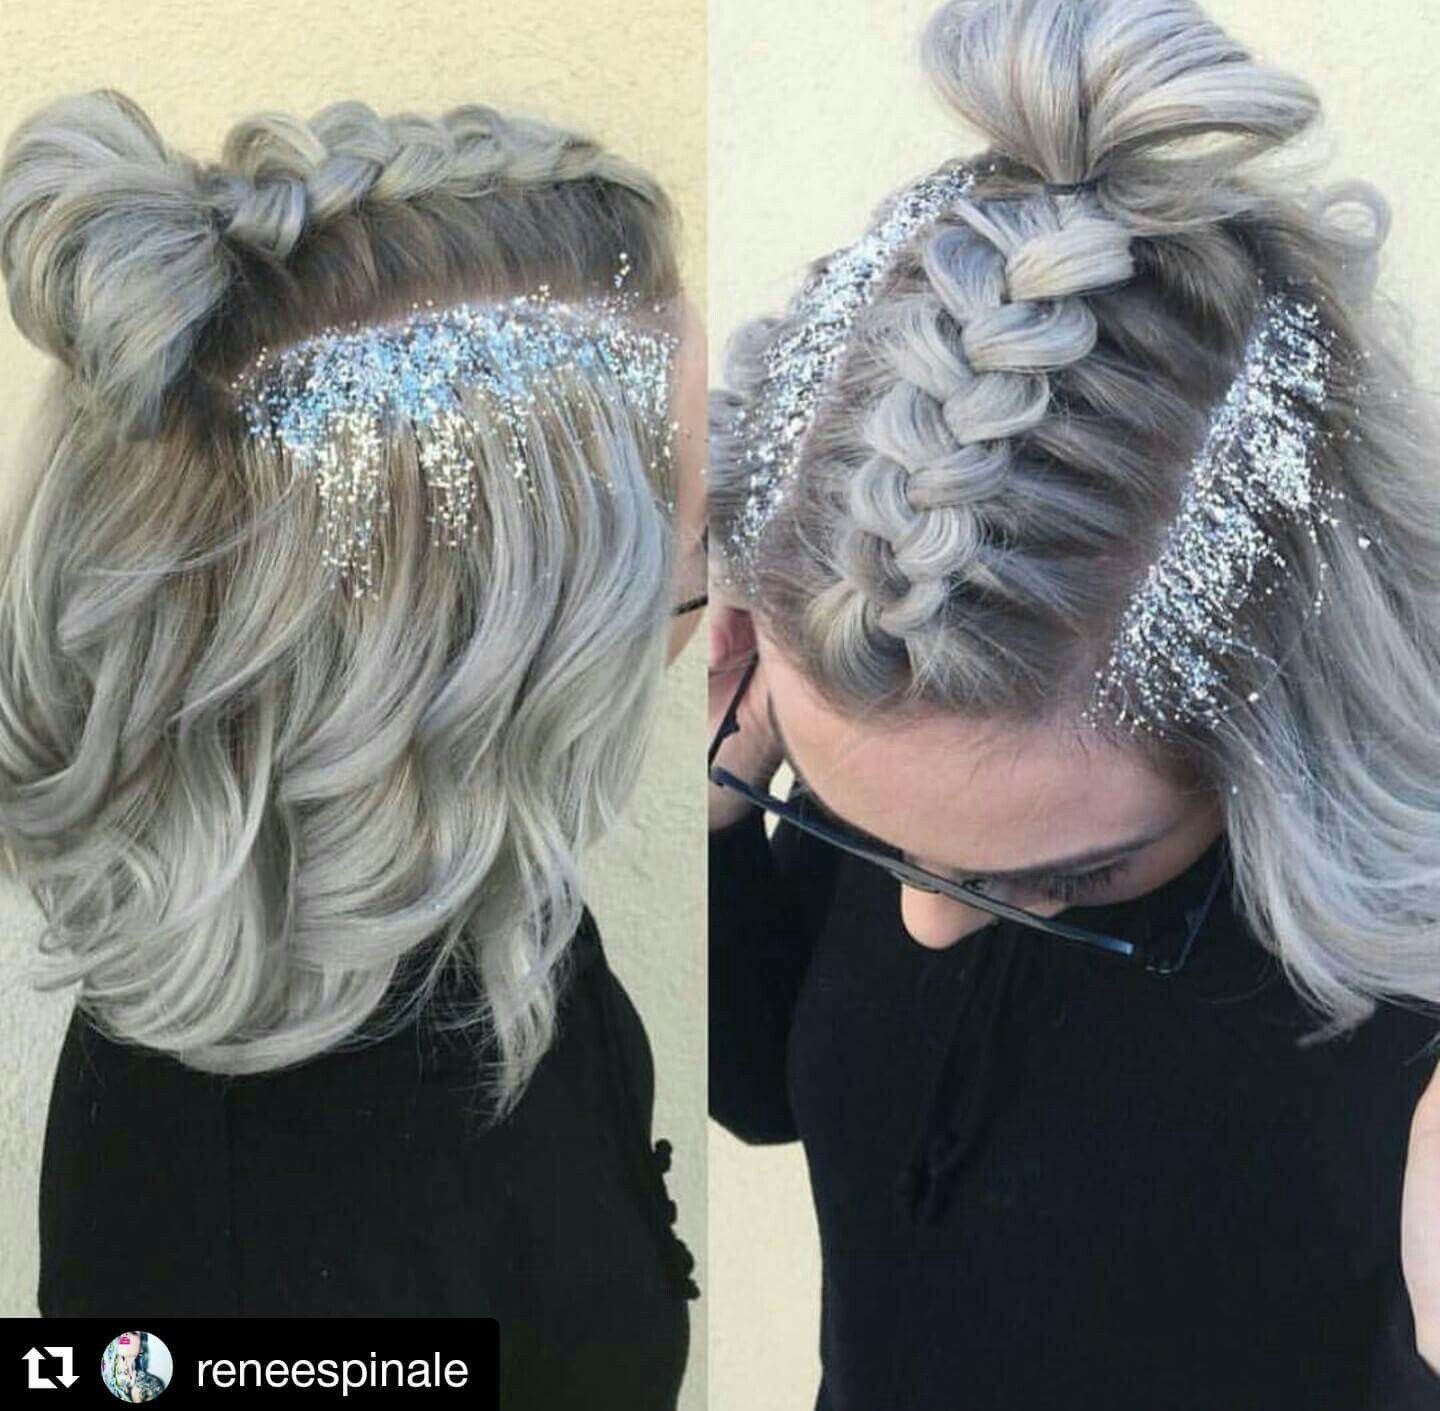 Glitter roots and braid hair nails makeup skin